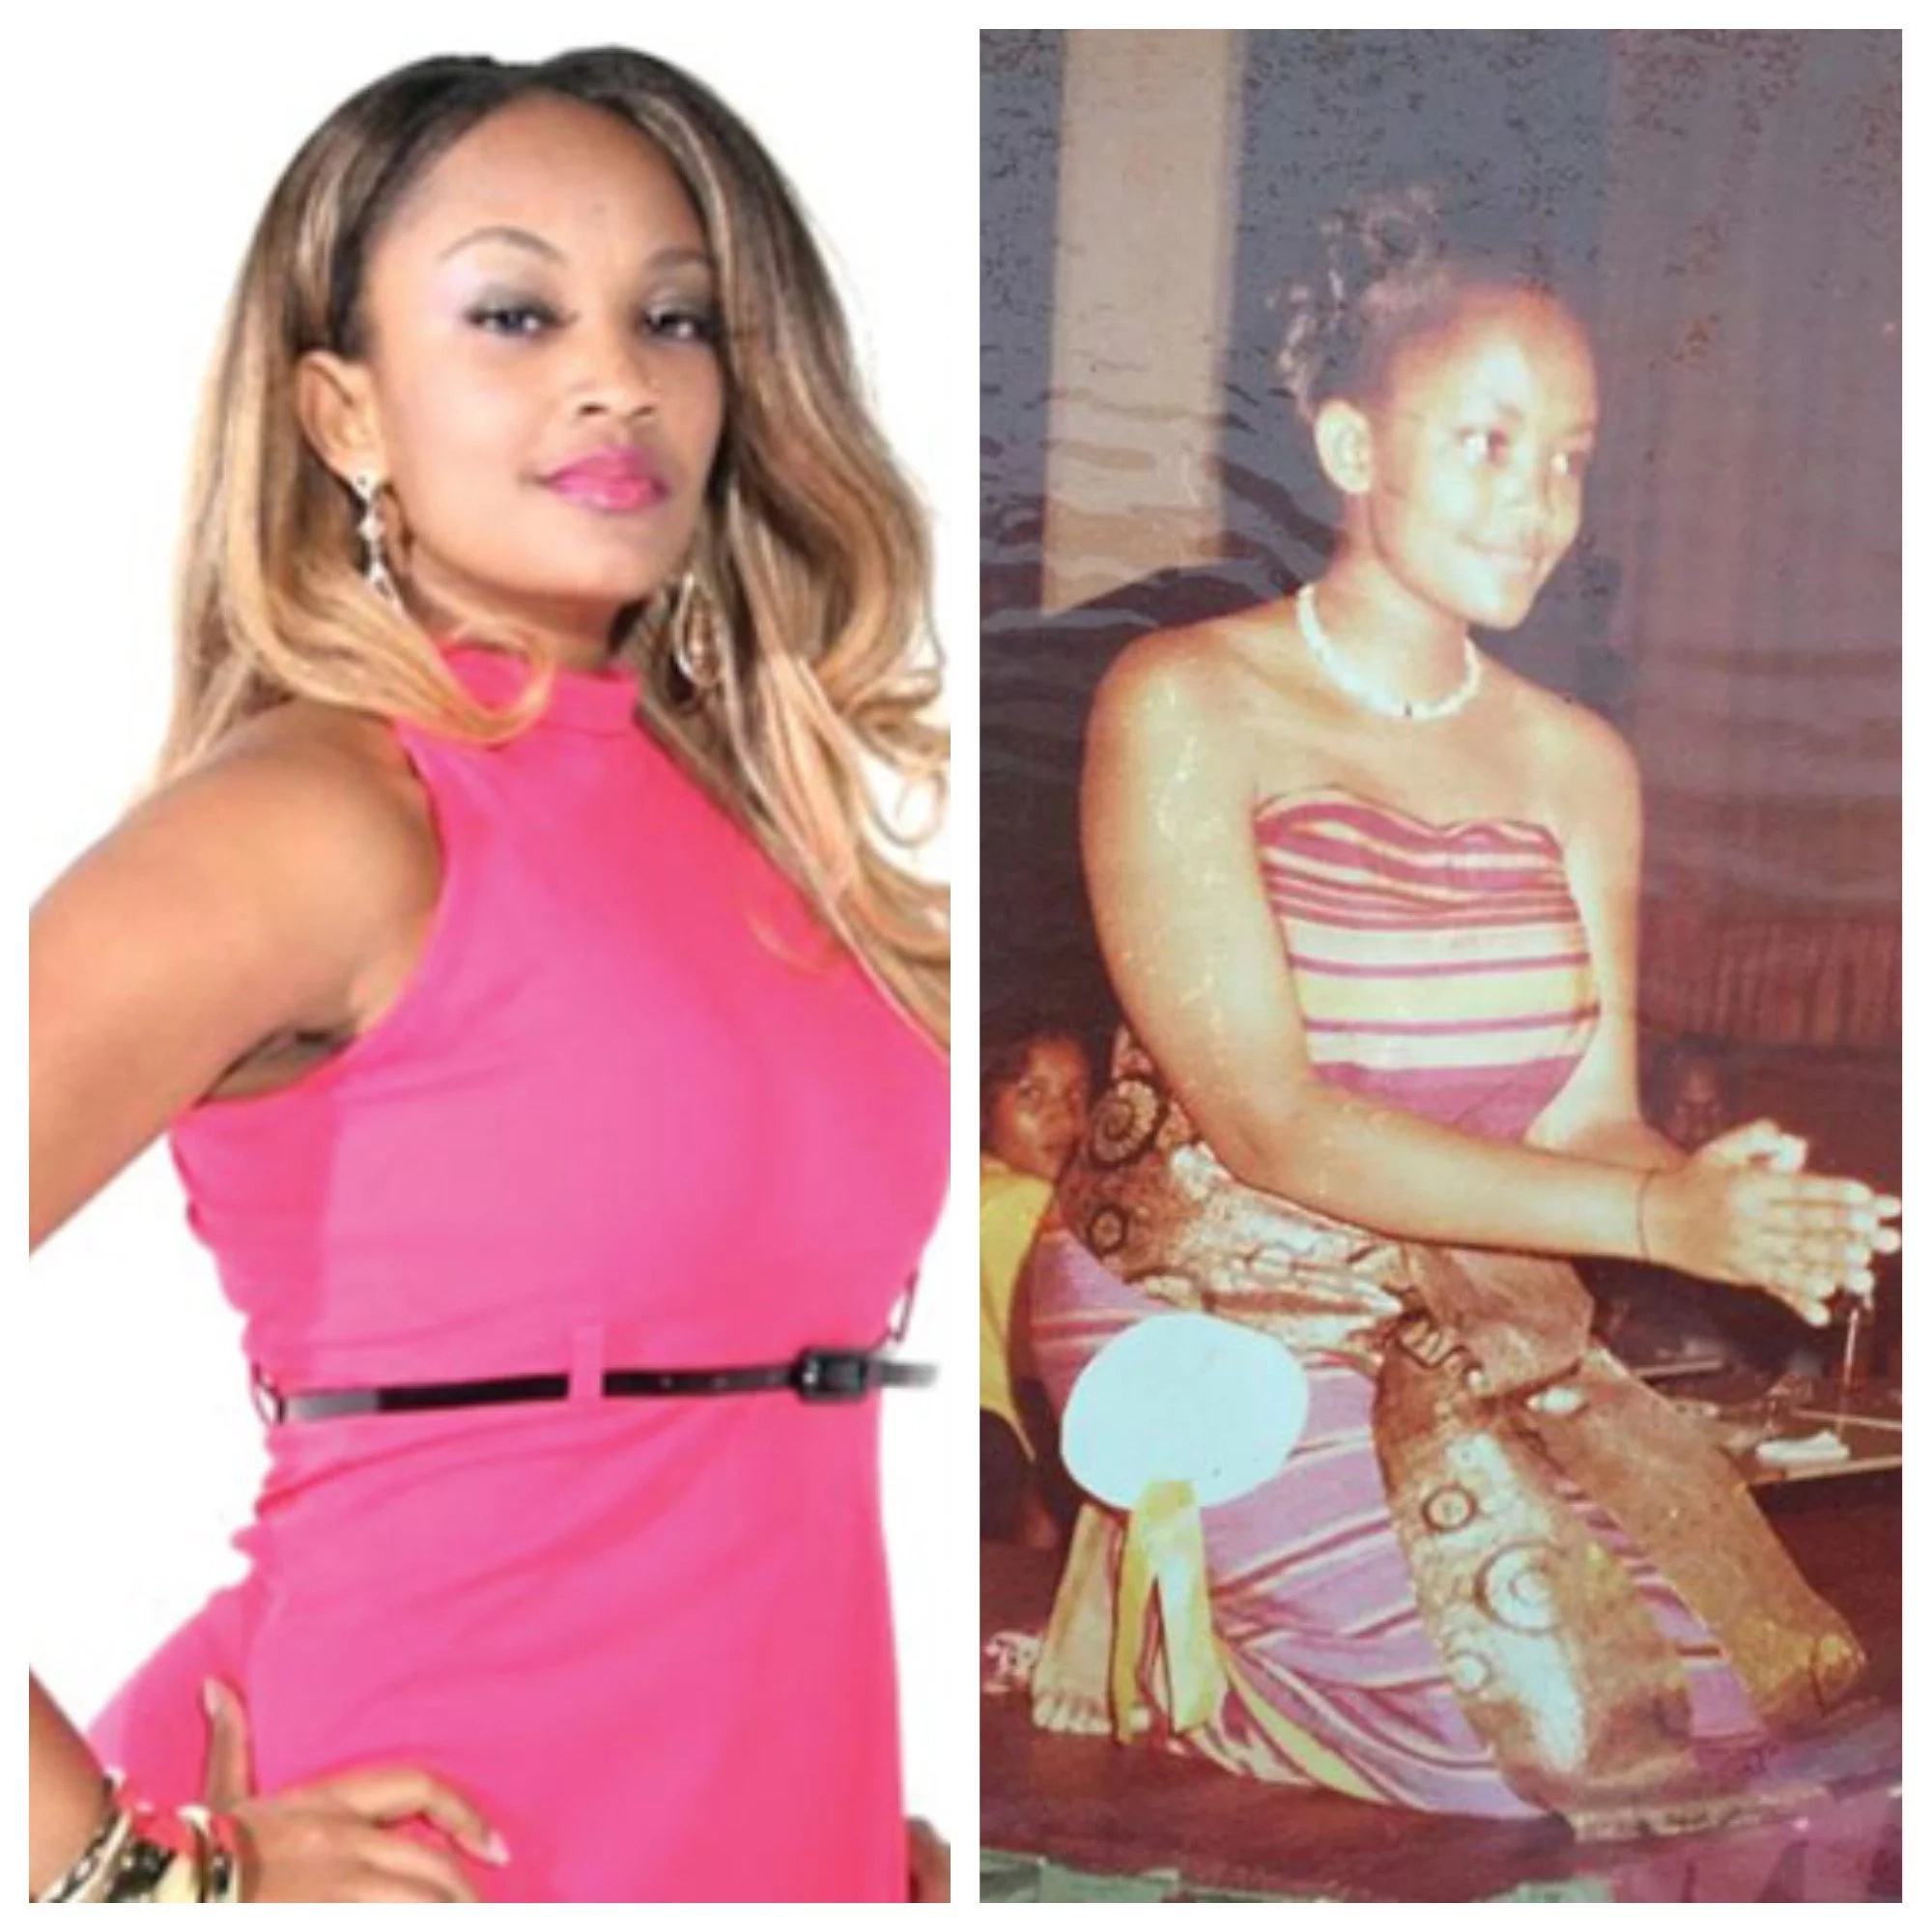 Throwback photos of Diamond's wife before the fame and money